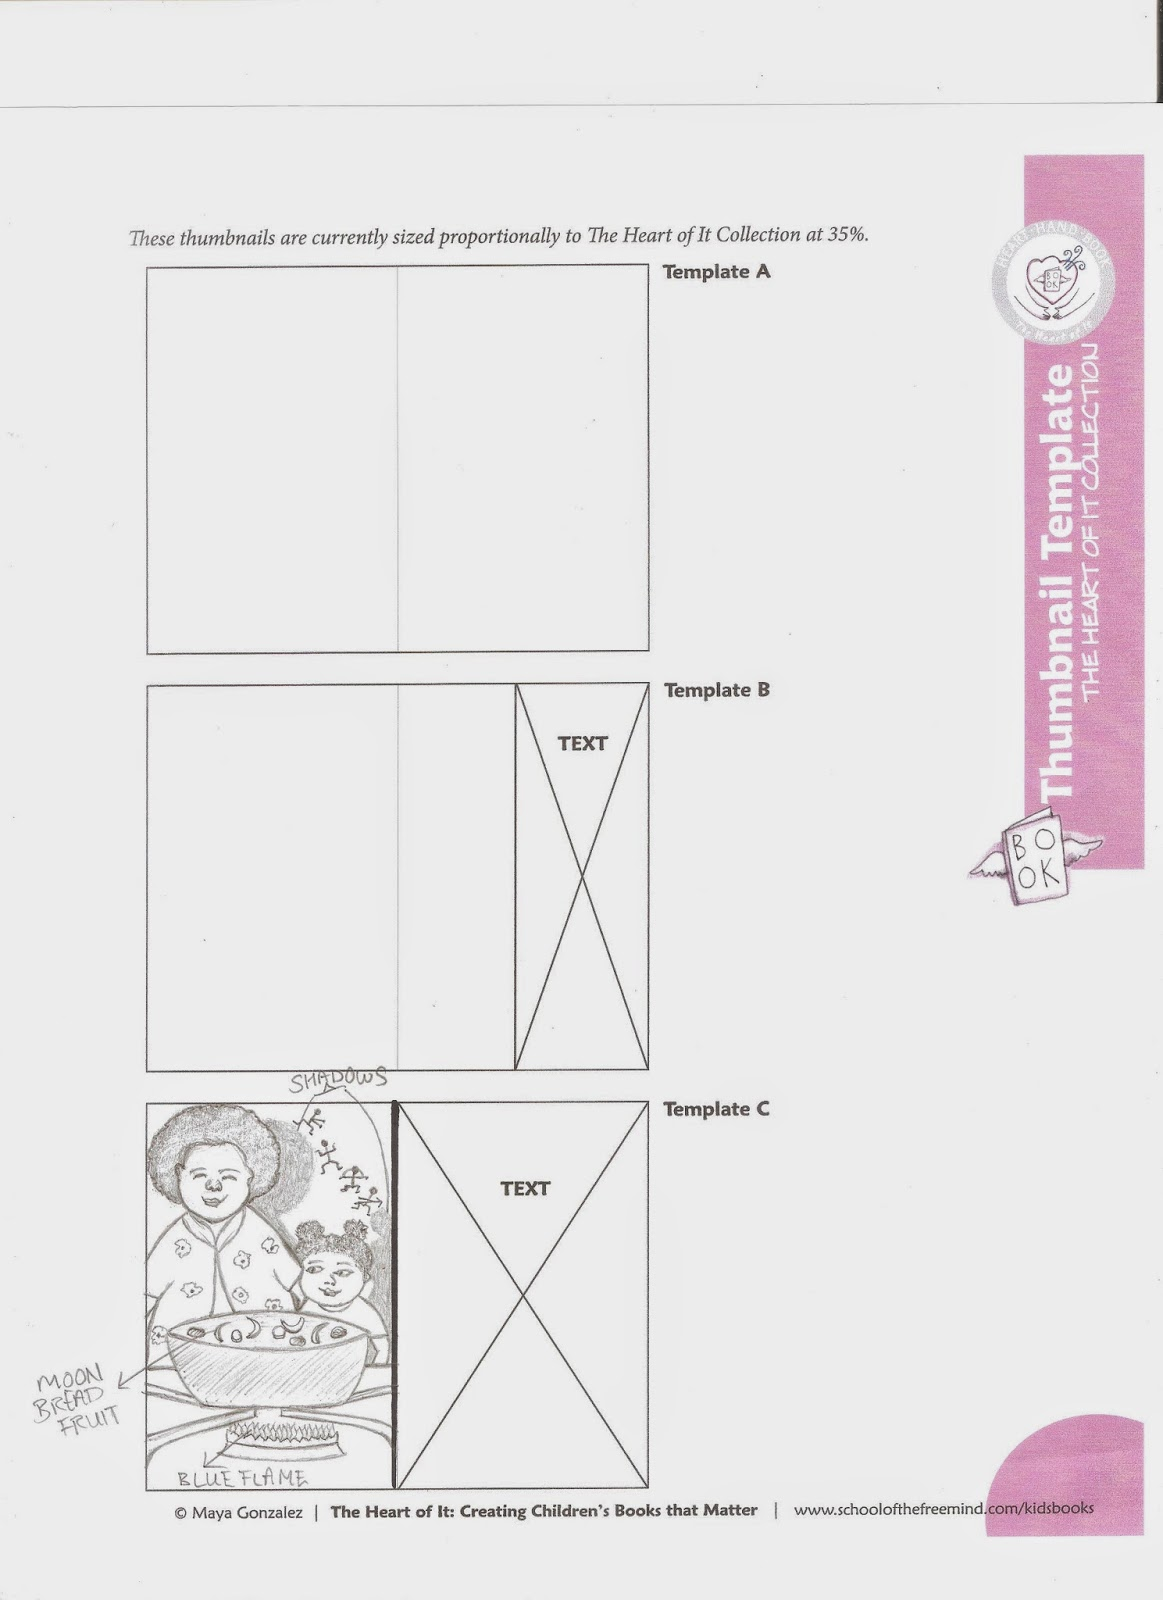 Summer Edward Writer Childrens Editor The Diagram Below Is Just A Rough Guide To Layout Of Typical I Chose Half Spread Page As You Can See In My Final Thumbnail We Were Given Templates Work With For Our Thumbnails